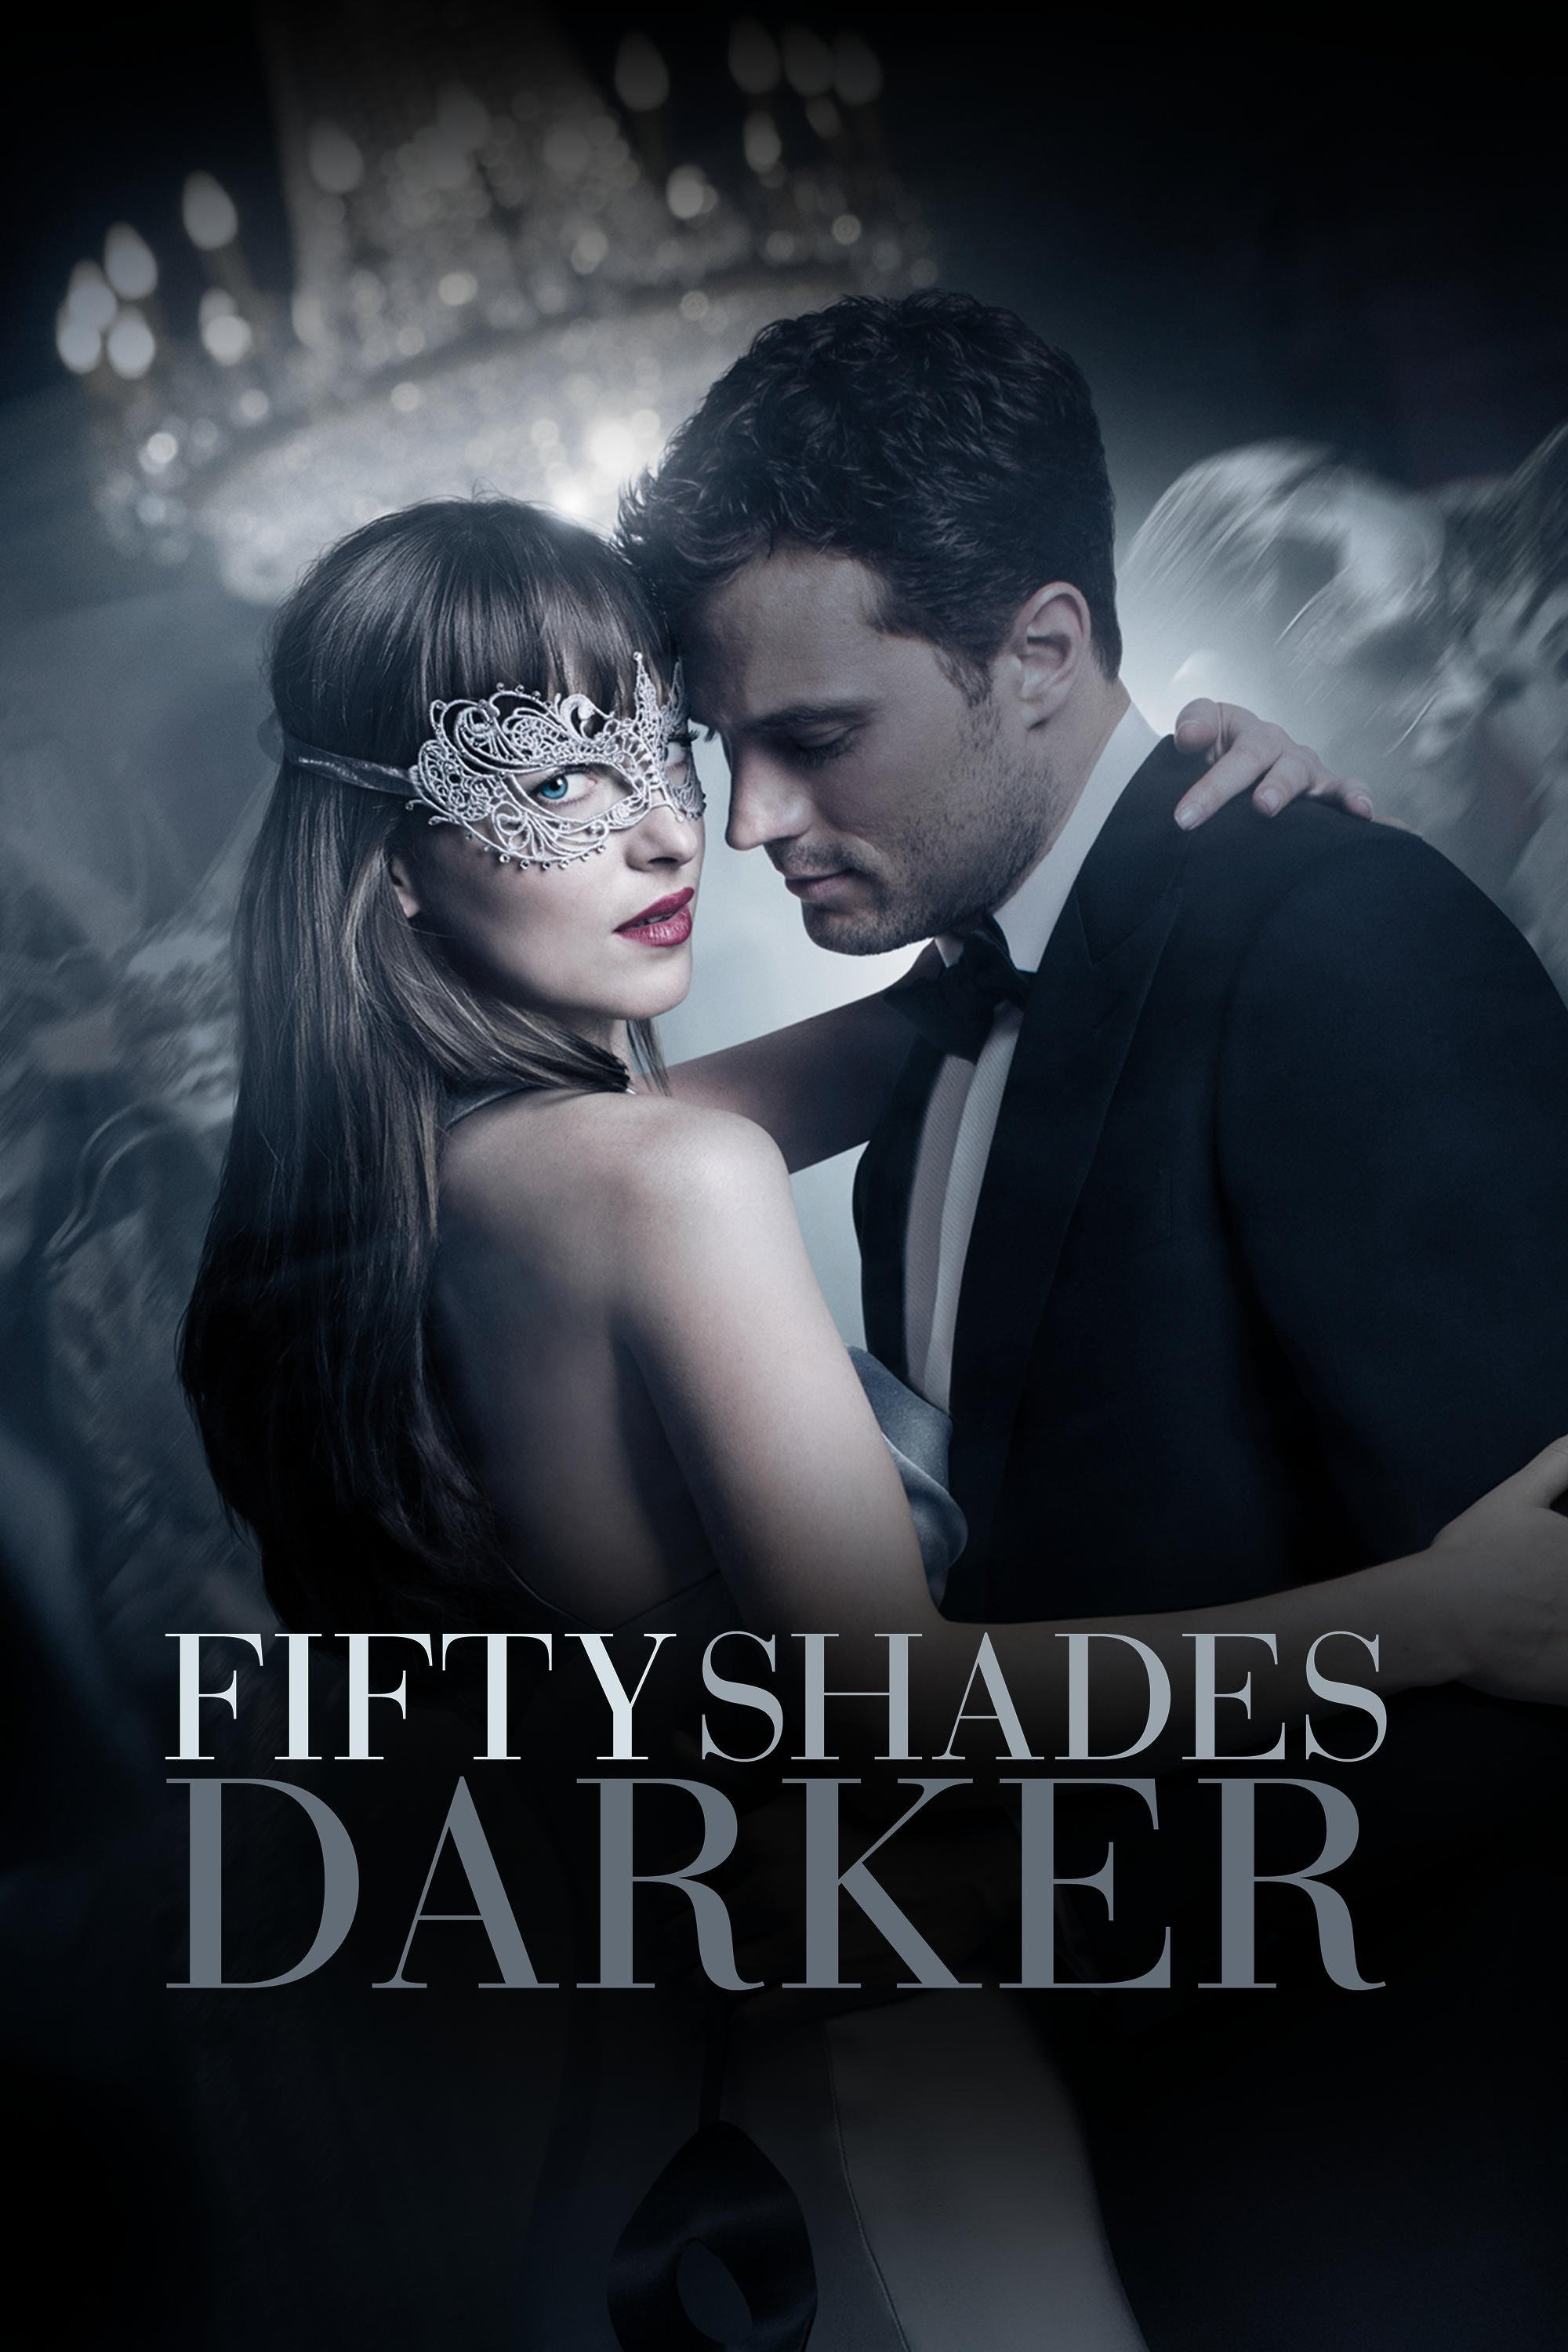 Fifty Shades Of Grey Full Movie Free Download Quiz For Fifty Shades Of Grey Fifty Shades Of Grey Ringtone Fifty Shades Of Grey Book For Windows 10